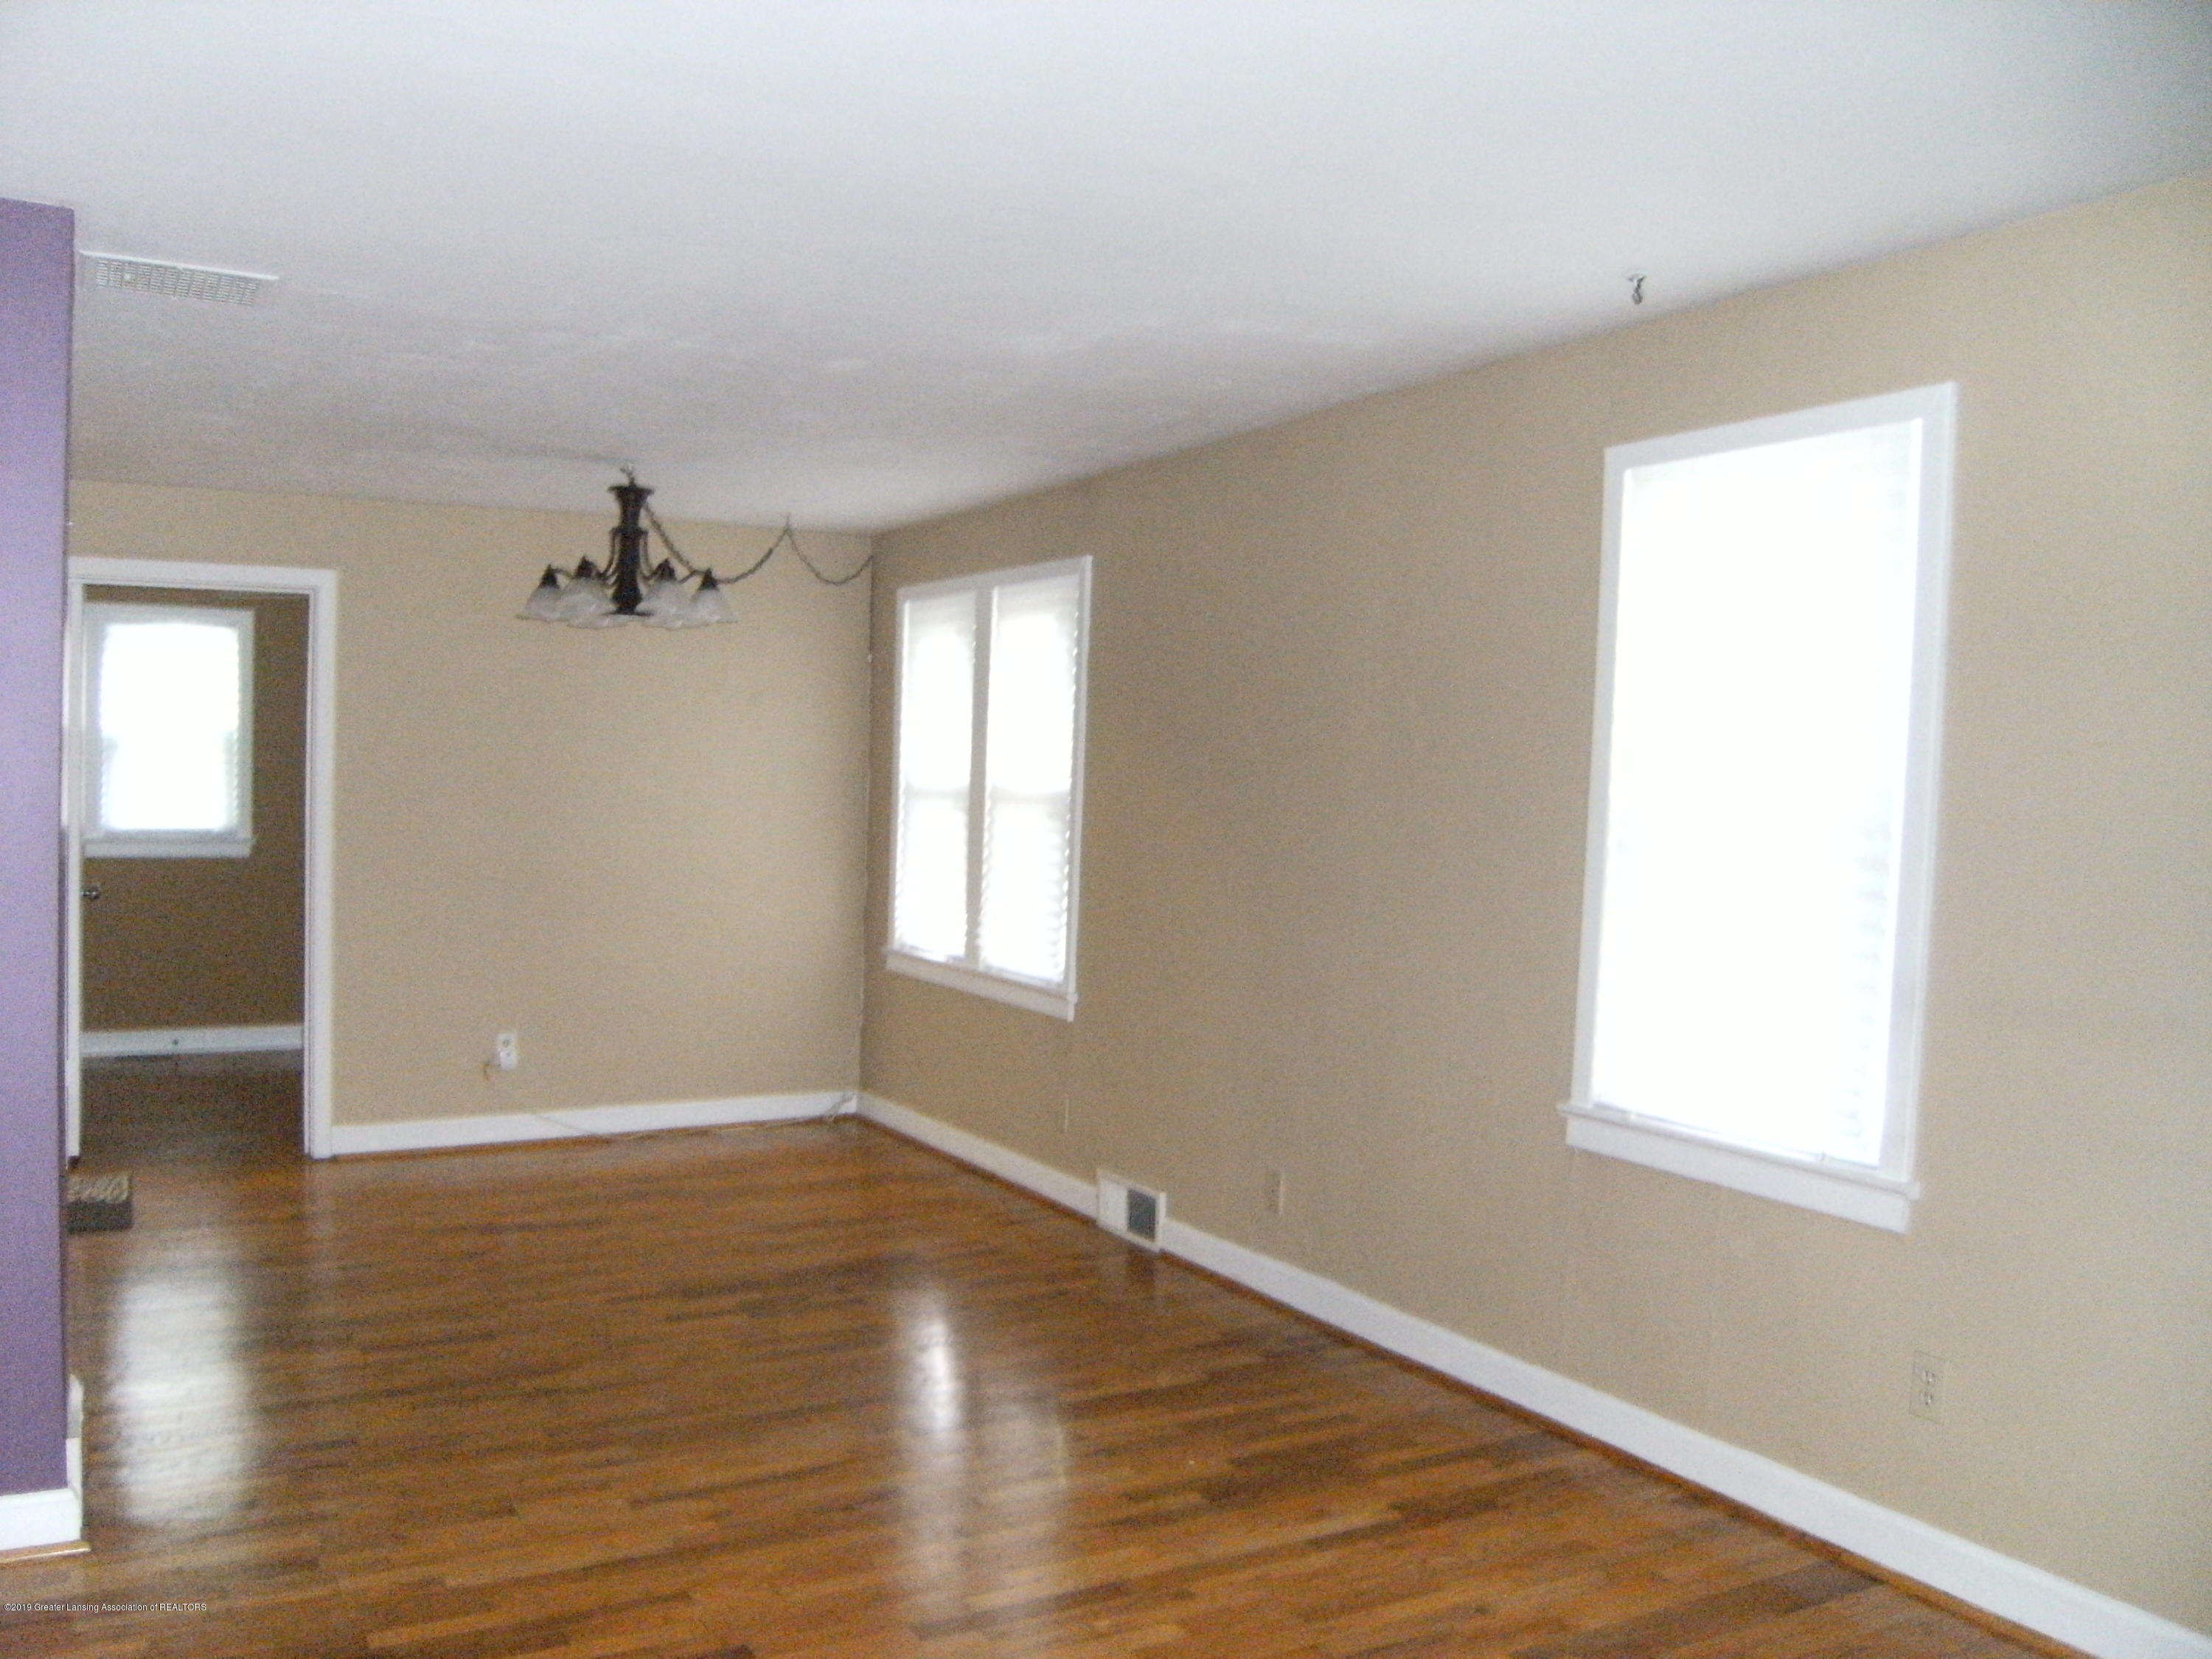 3021 Stabler St - Living room and dining room - 2